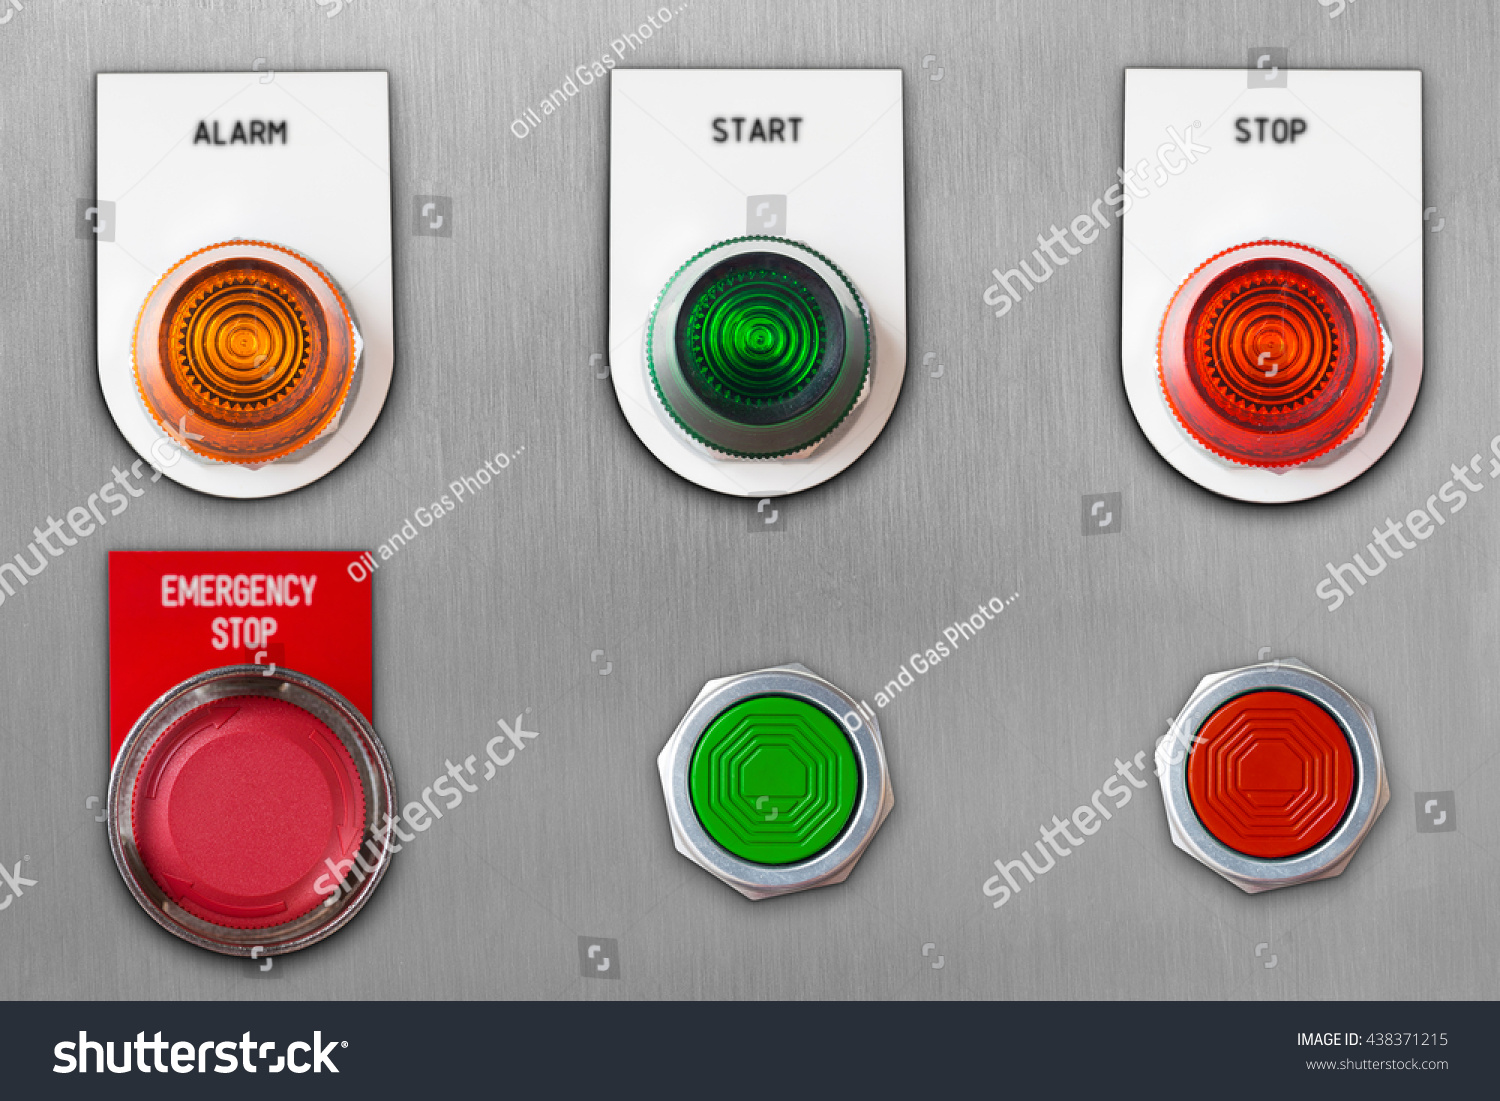 Emergency stop icon clipart emergency off - Push Button Switch With Emergency Stop And Start Stop Alarm Lamp Signal On Stainless Steel Panel